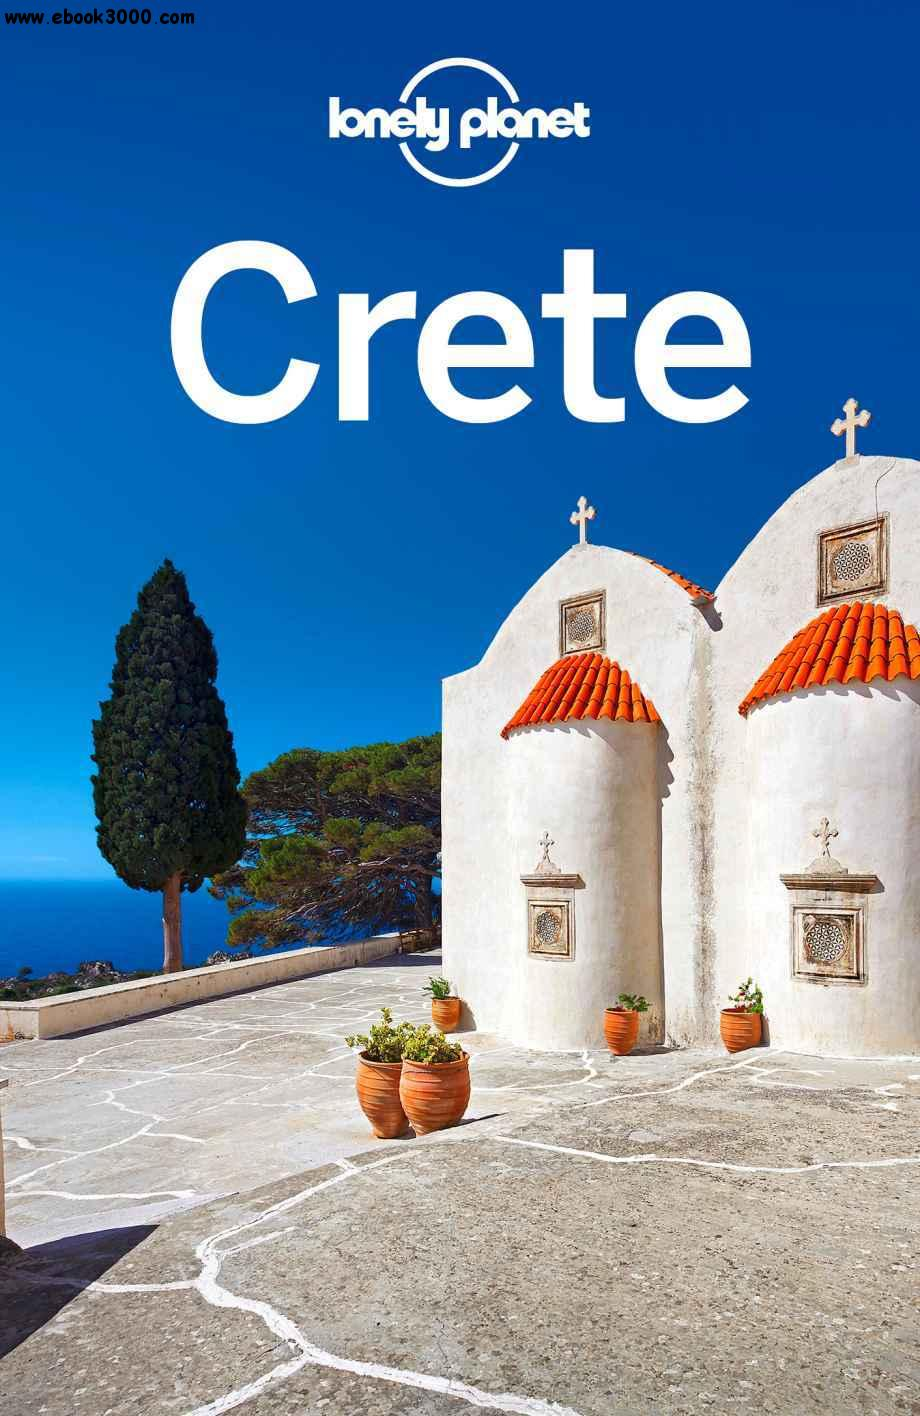 Lonely Planet Crete, 6 edition (Travel Guide) download dree